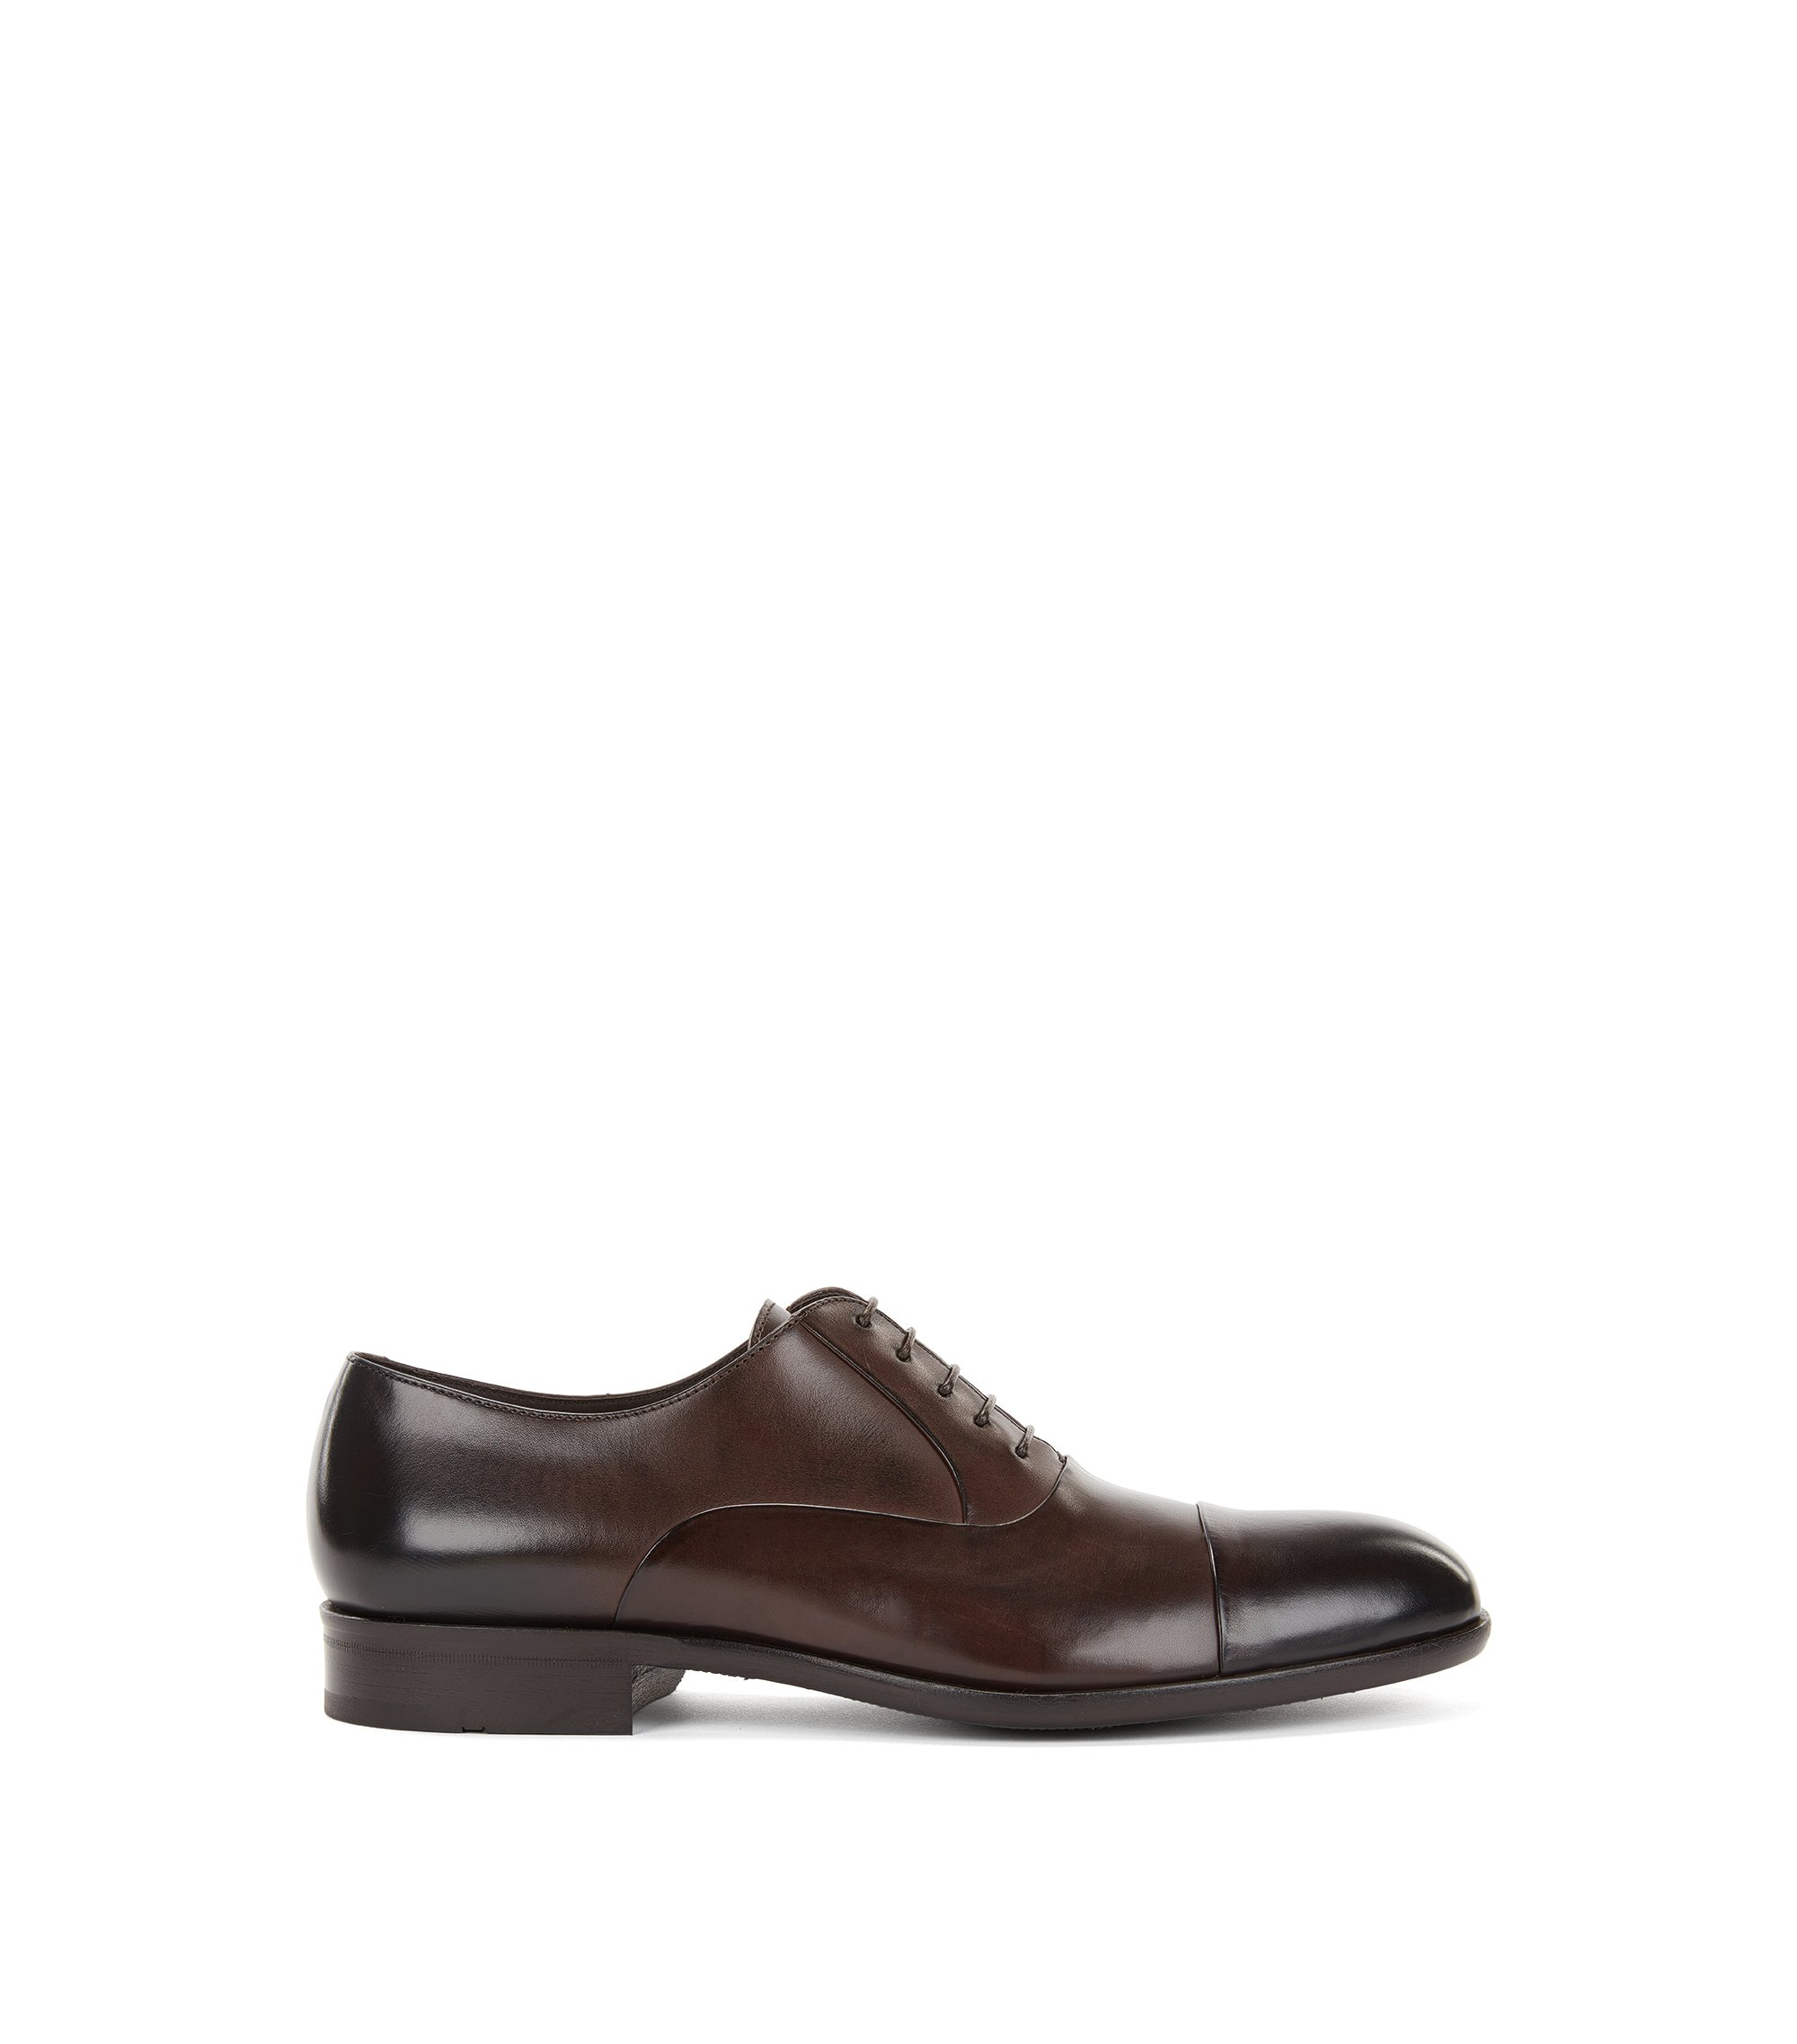 Lace-up Oxford shoes in polished leather, Donkerbruin